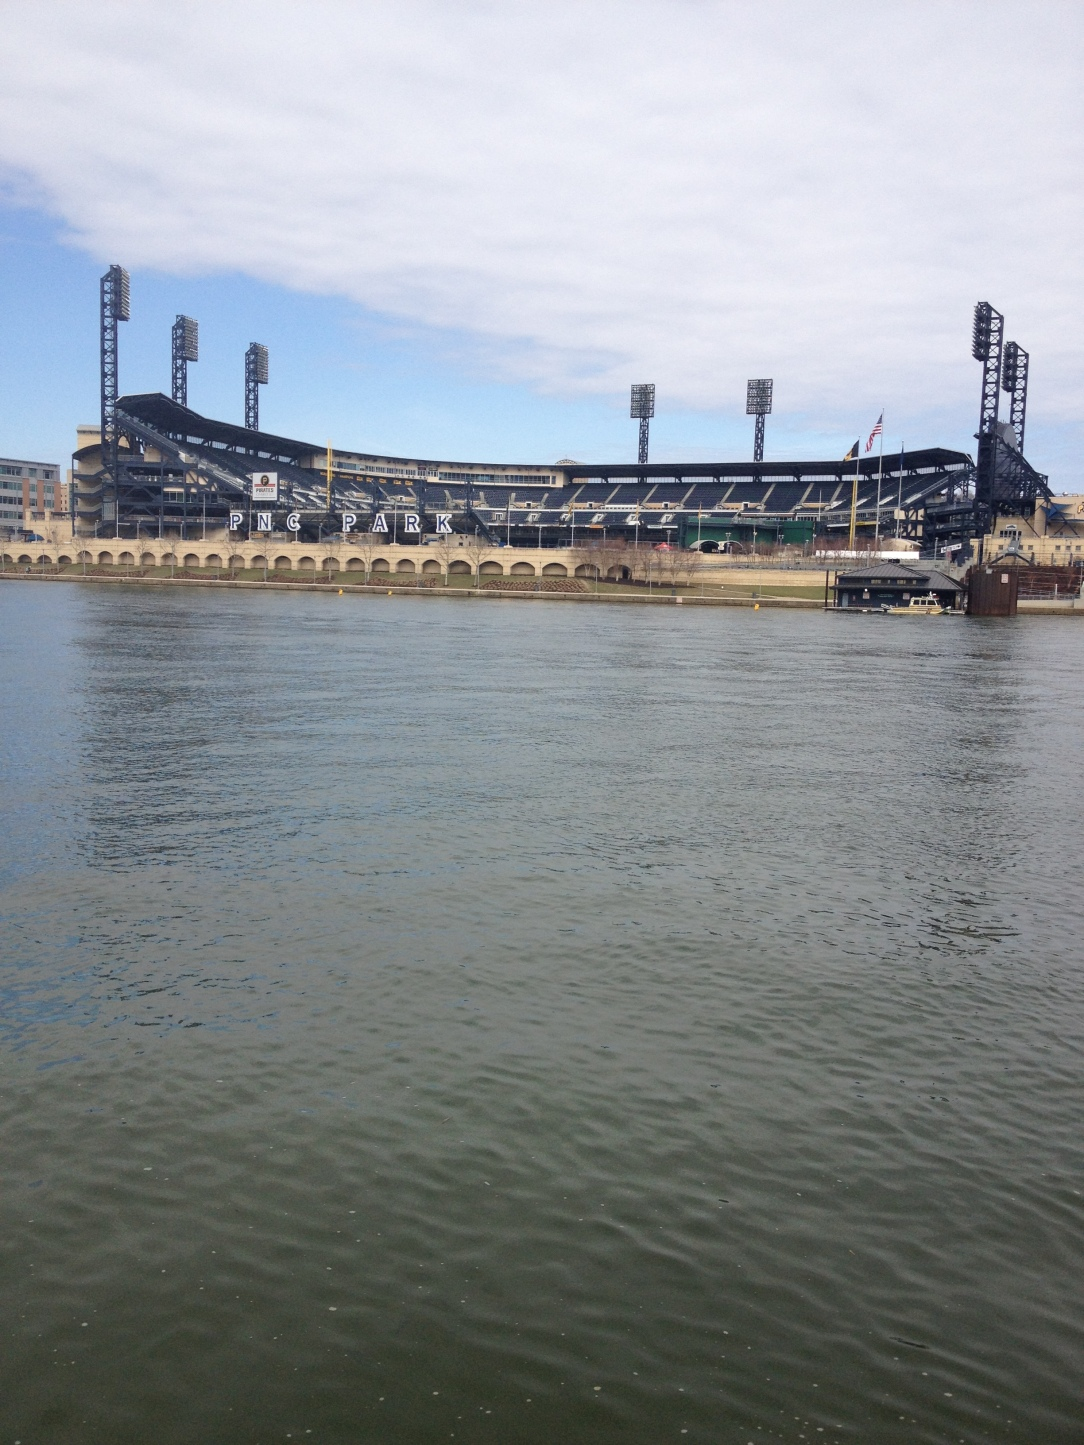 I imagine catching a Pirates game via kayak would be a fun way to spend the afternoon.  Heinz Staidum, where the Steelers play, is adjacent down river, along with a newly opened casino.